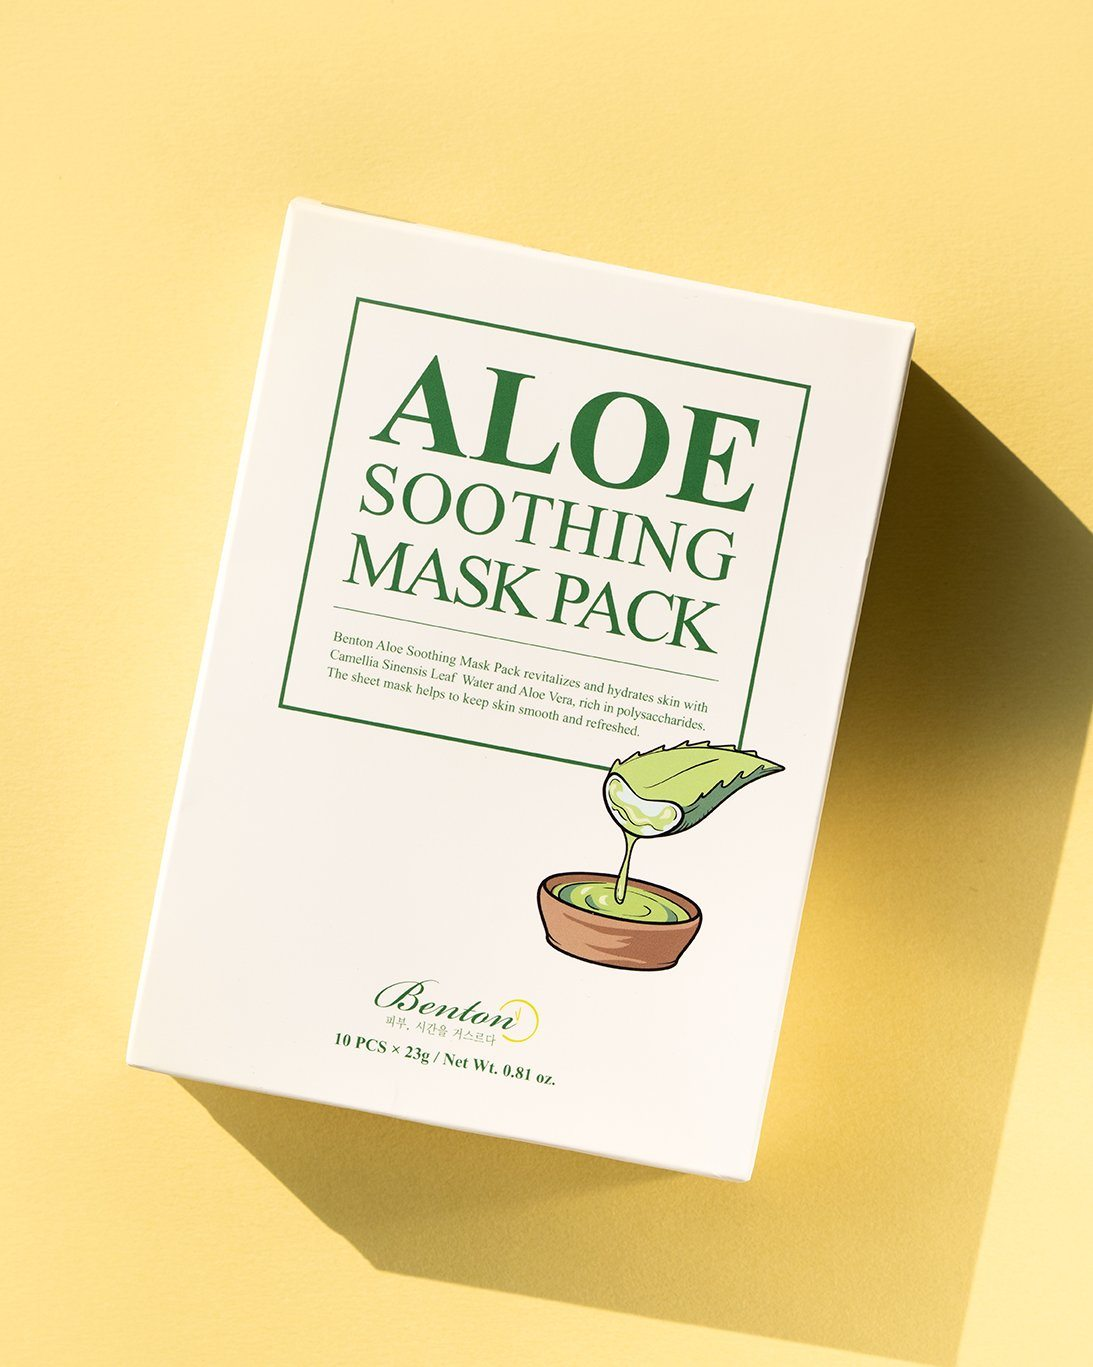 Benton Aloe Soothing Mask Pack box